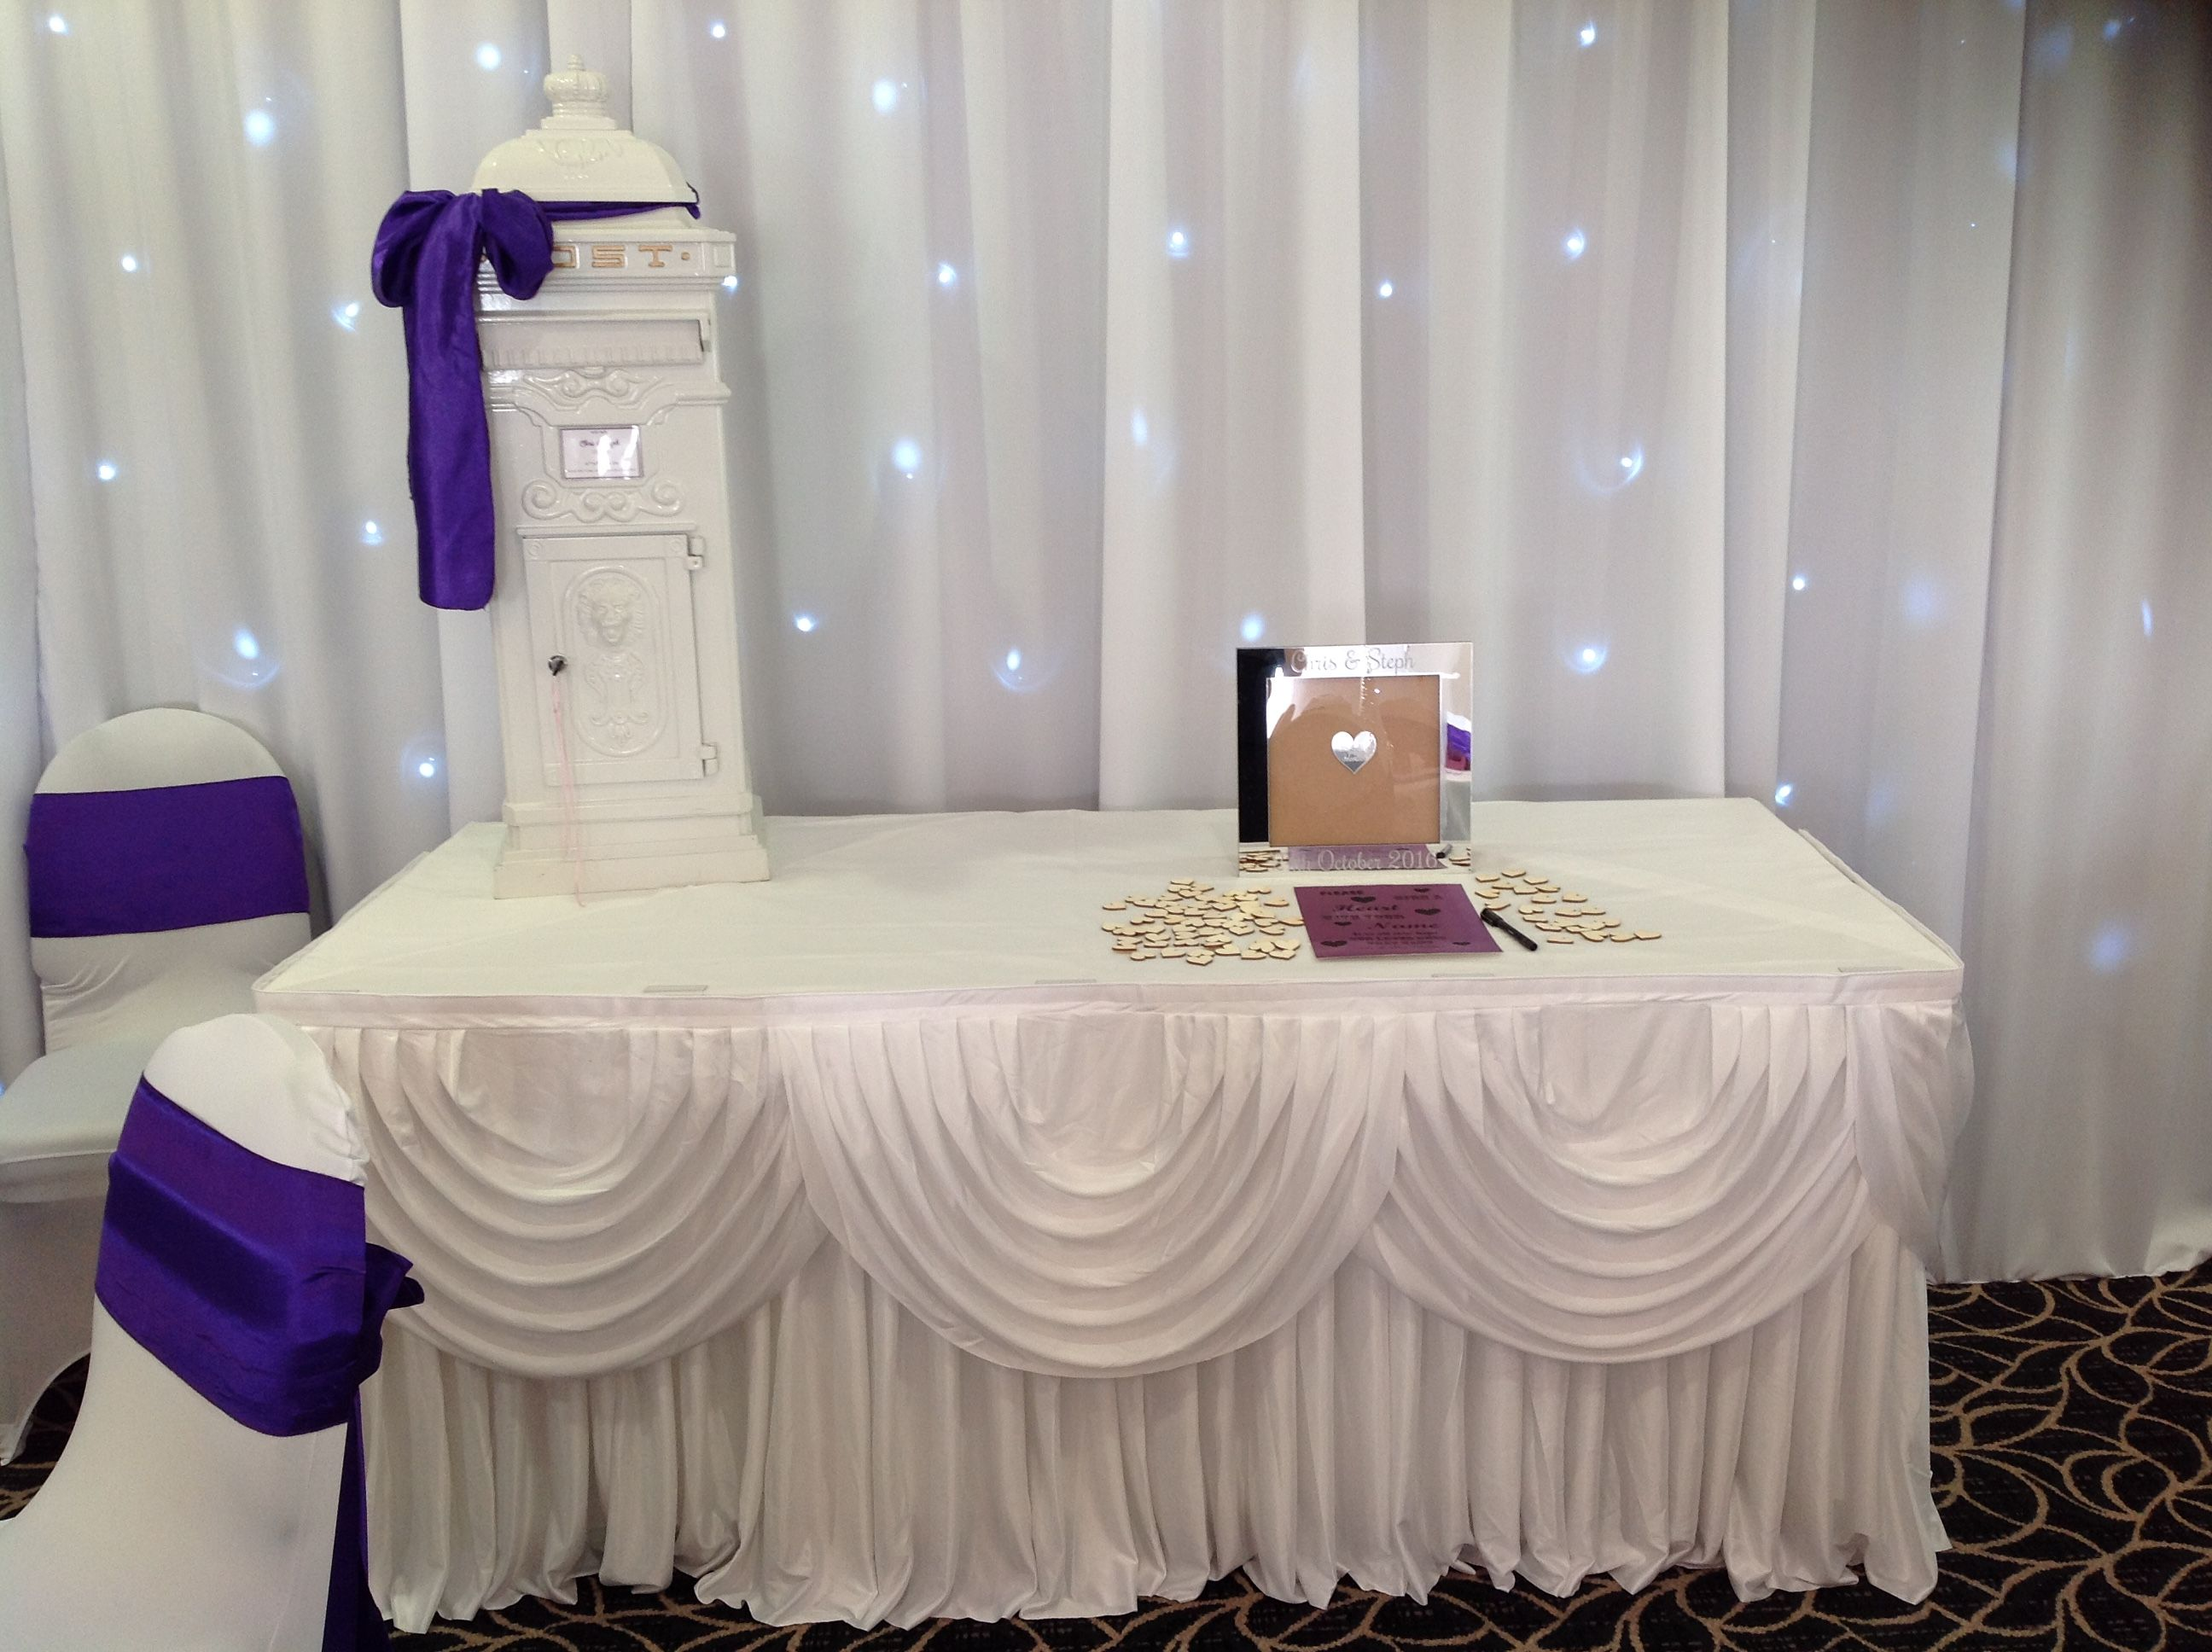 Wedding Chair Covers Tamworth Bedroom Swing Ikea Post Box And Gift Table Swags Available To Hire From Make It Special Events Atherstone